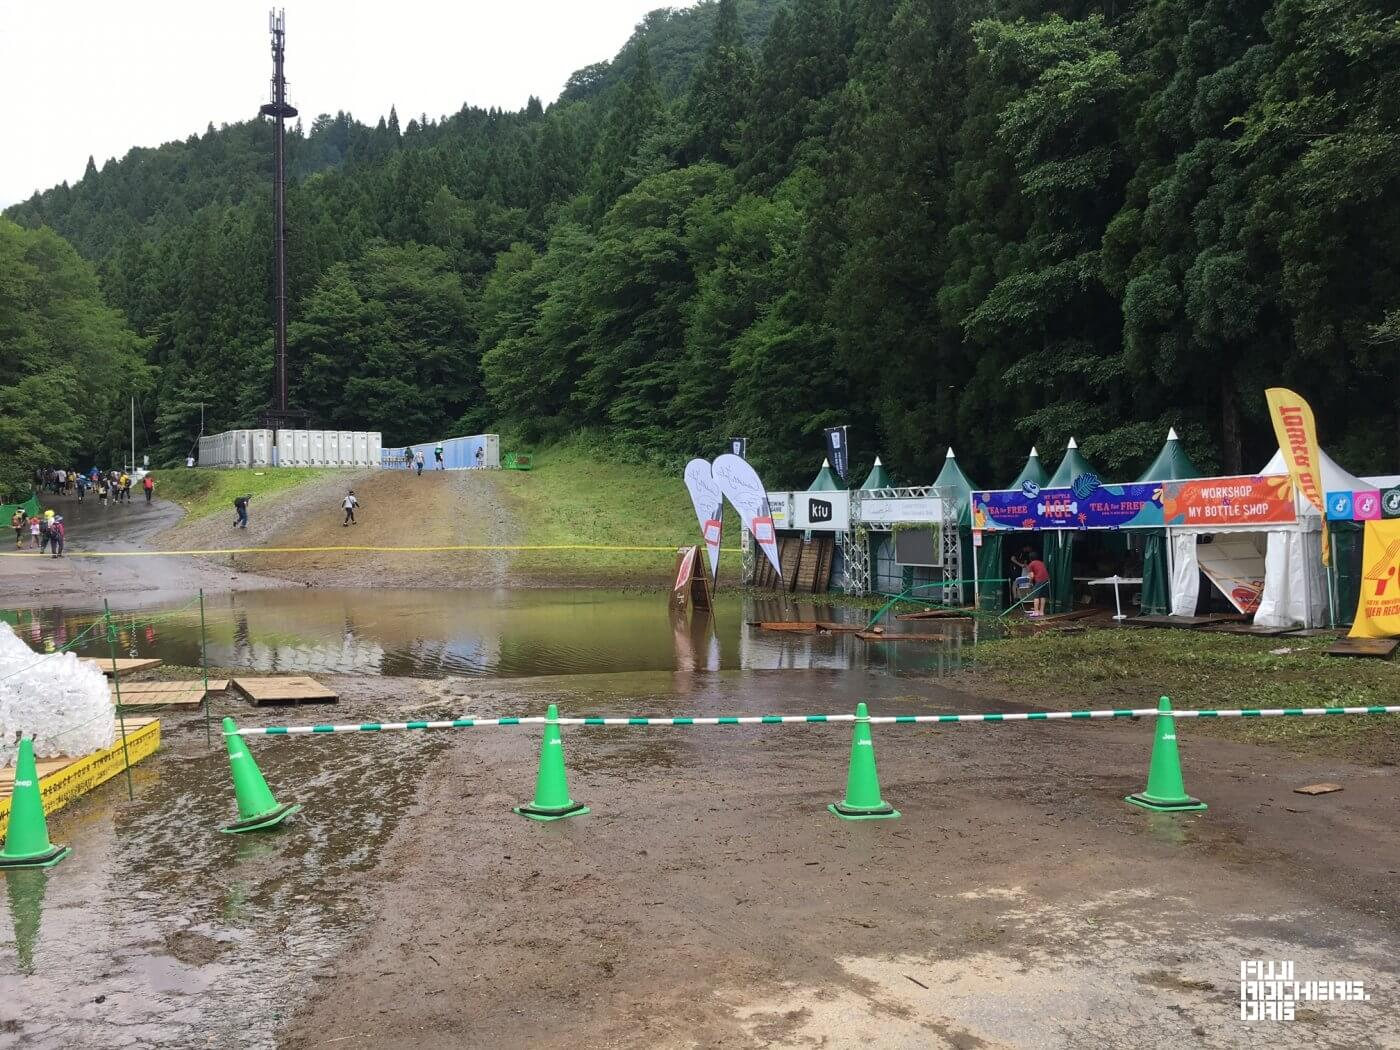 Fuji Rock Still Stands